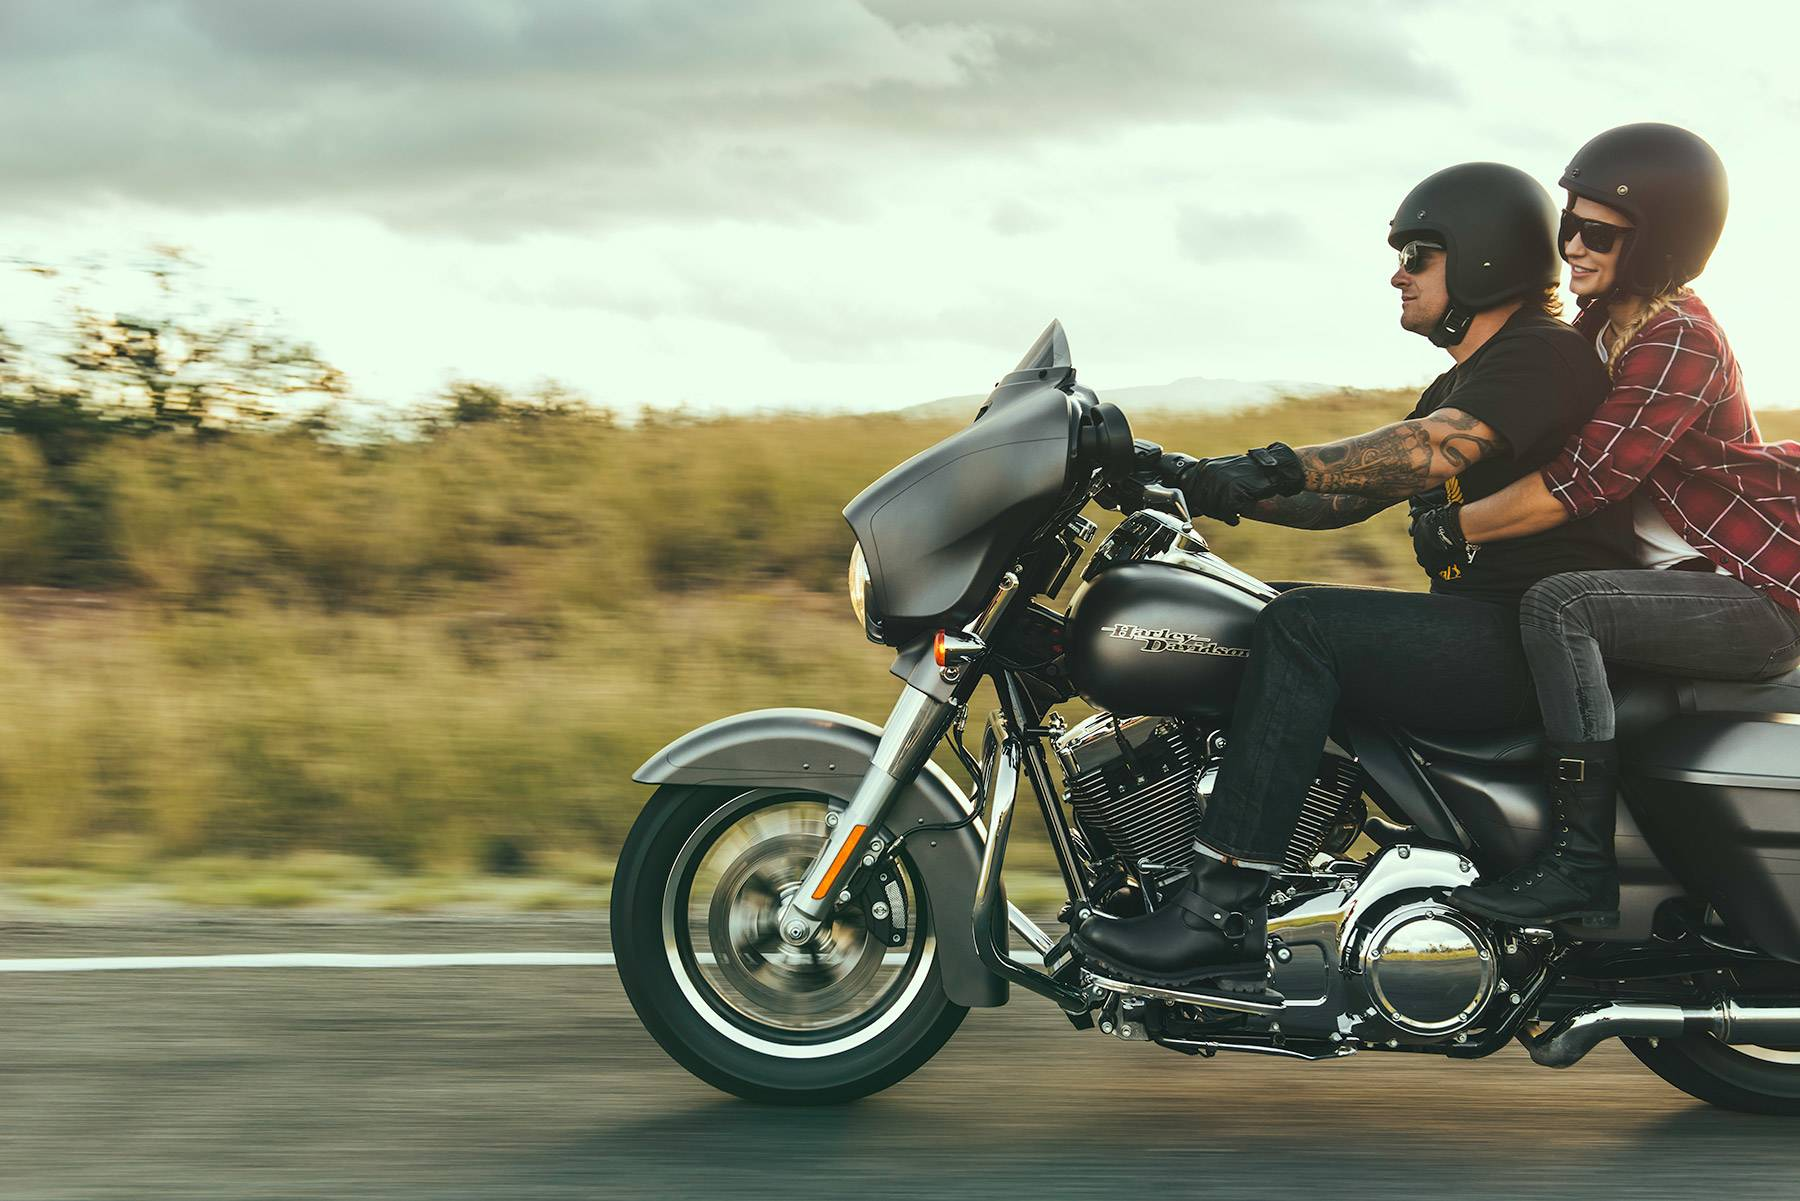 Top 5 reasons to get a motorcycle